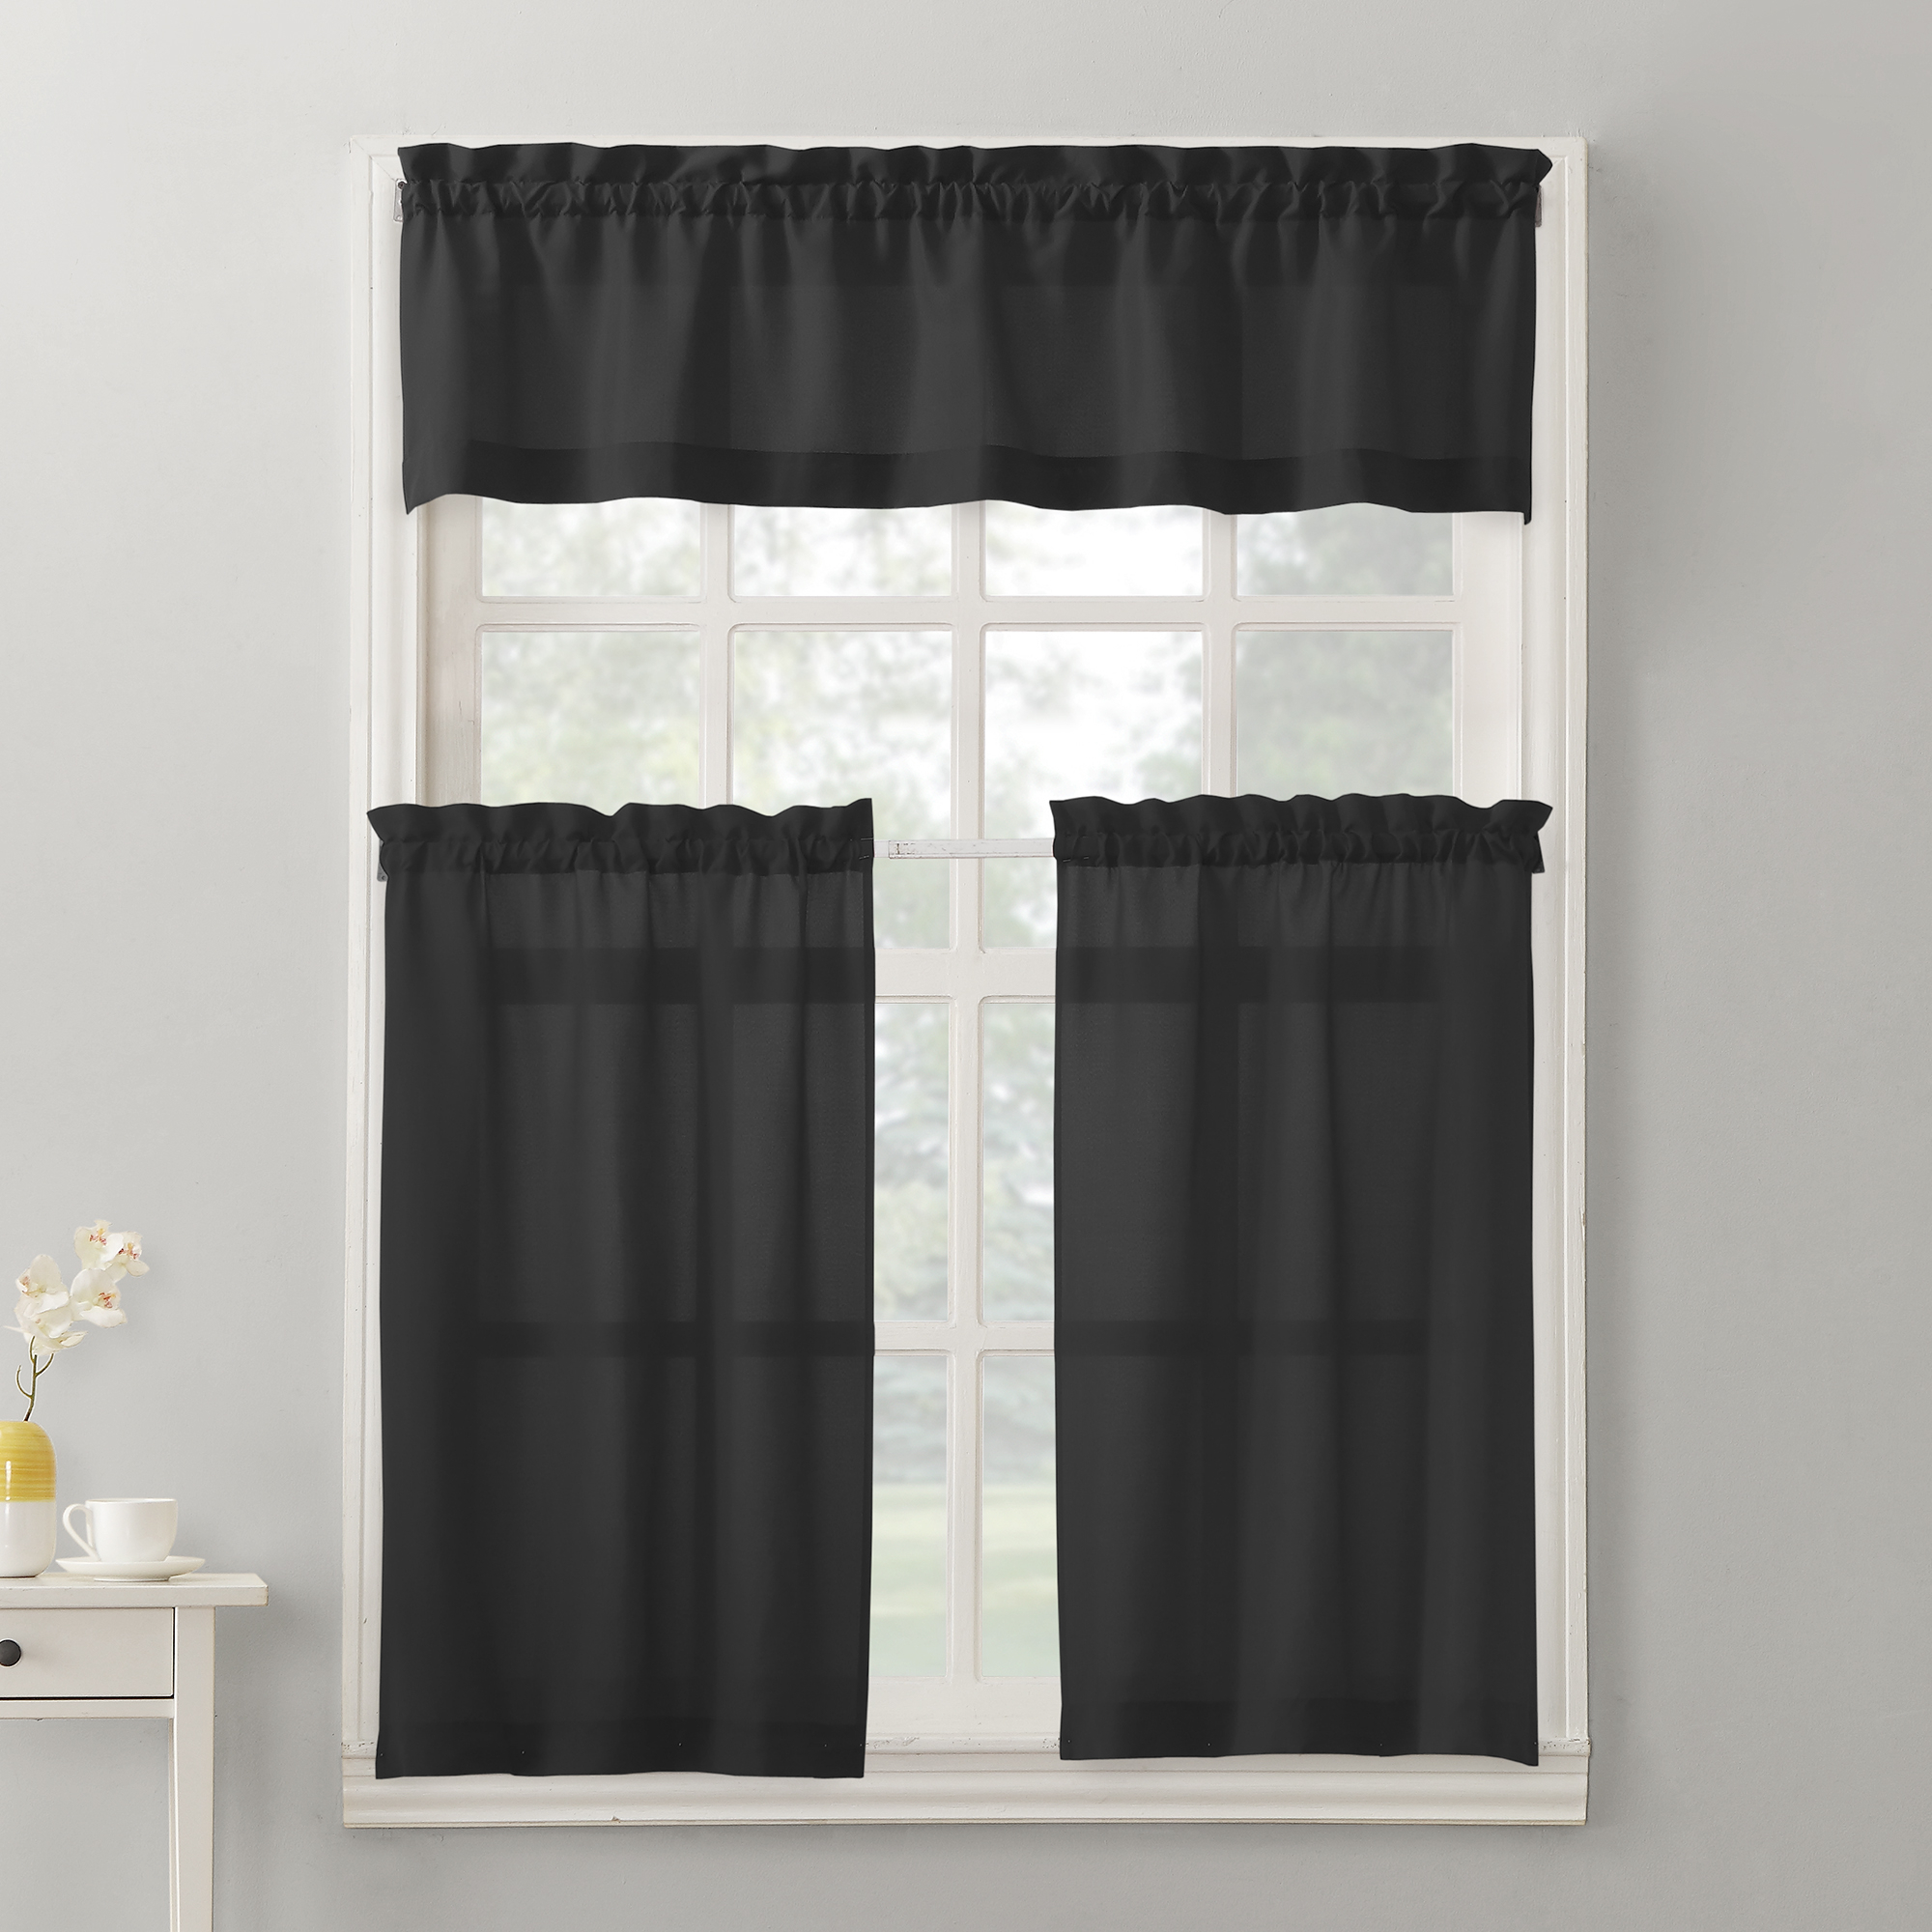 Mainstays Solid 3 Piece Kitchen Curtain Tier And Valance Set Throughout Popular Twill 3 Piece Kitchen Curtain Tier Sets (View 8 of 20)